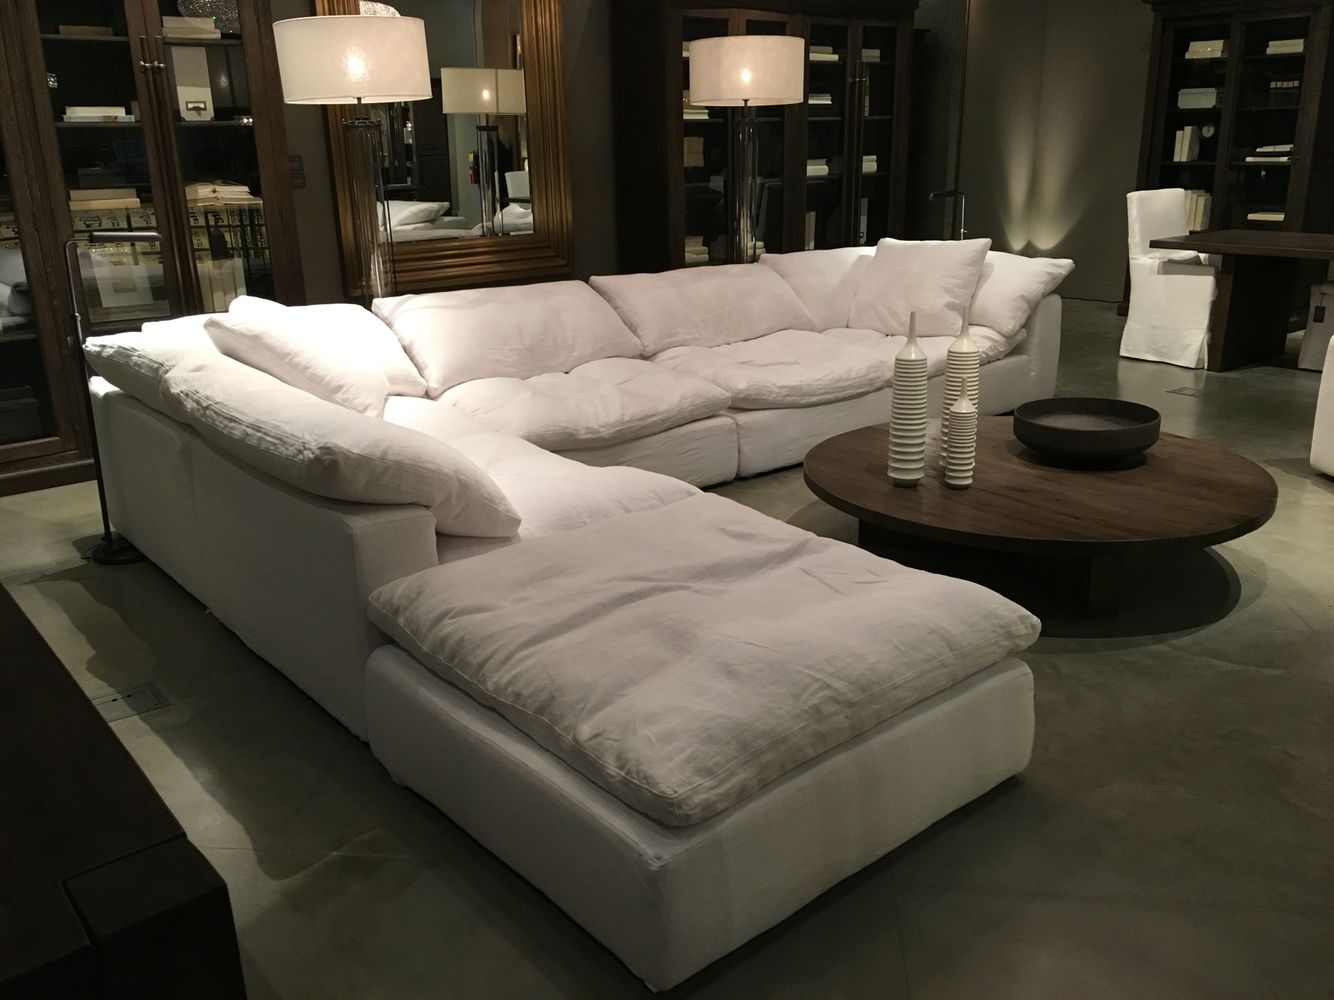 Restoration hardware sectional quotcloudquot couch future for Super comfortable sectional sofa